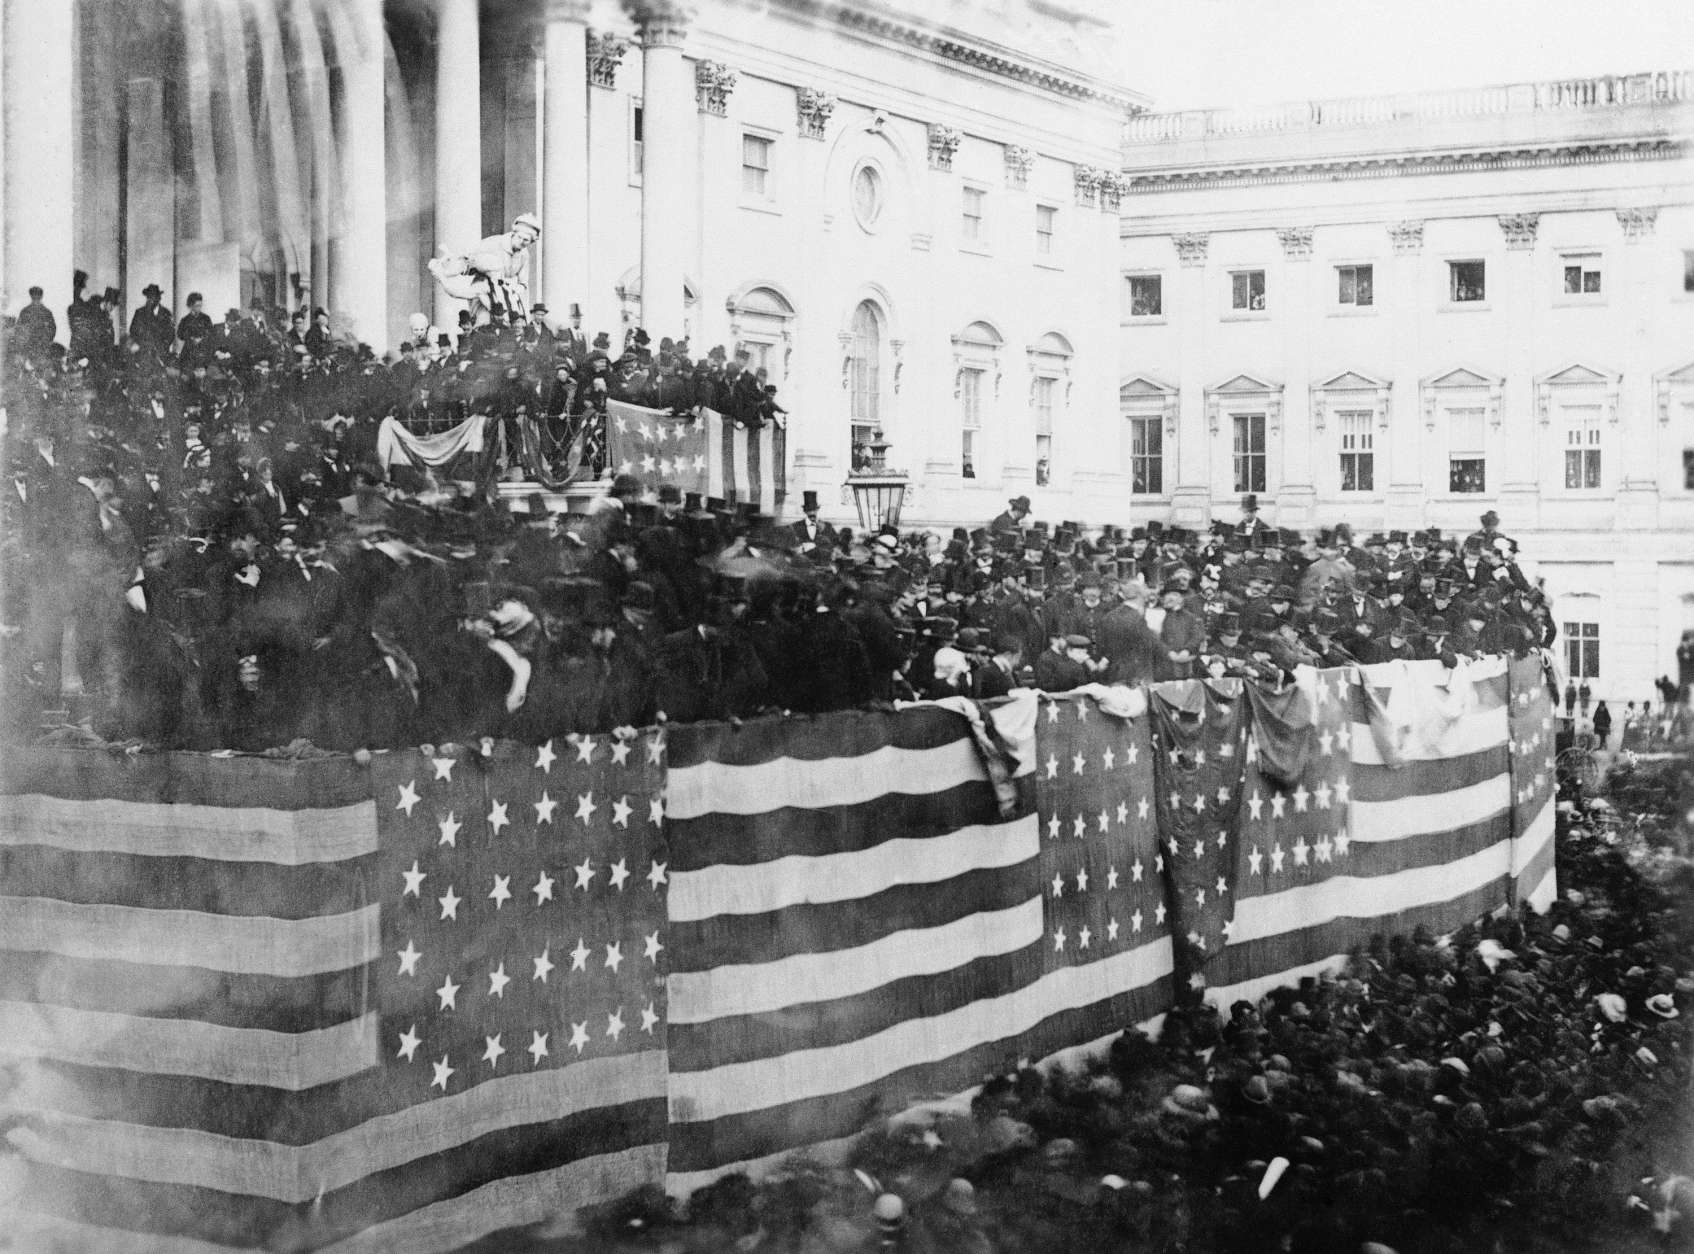 This is a general view of the grand stand during the inauguration of Rutherford B. Hayes, March 5, 1877 in Washington. (AP Photo)